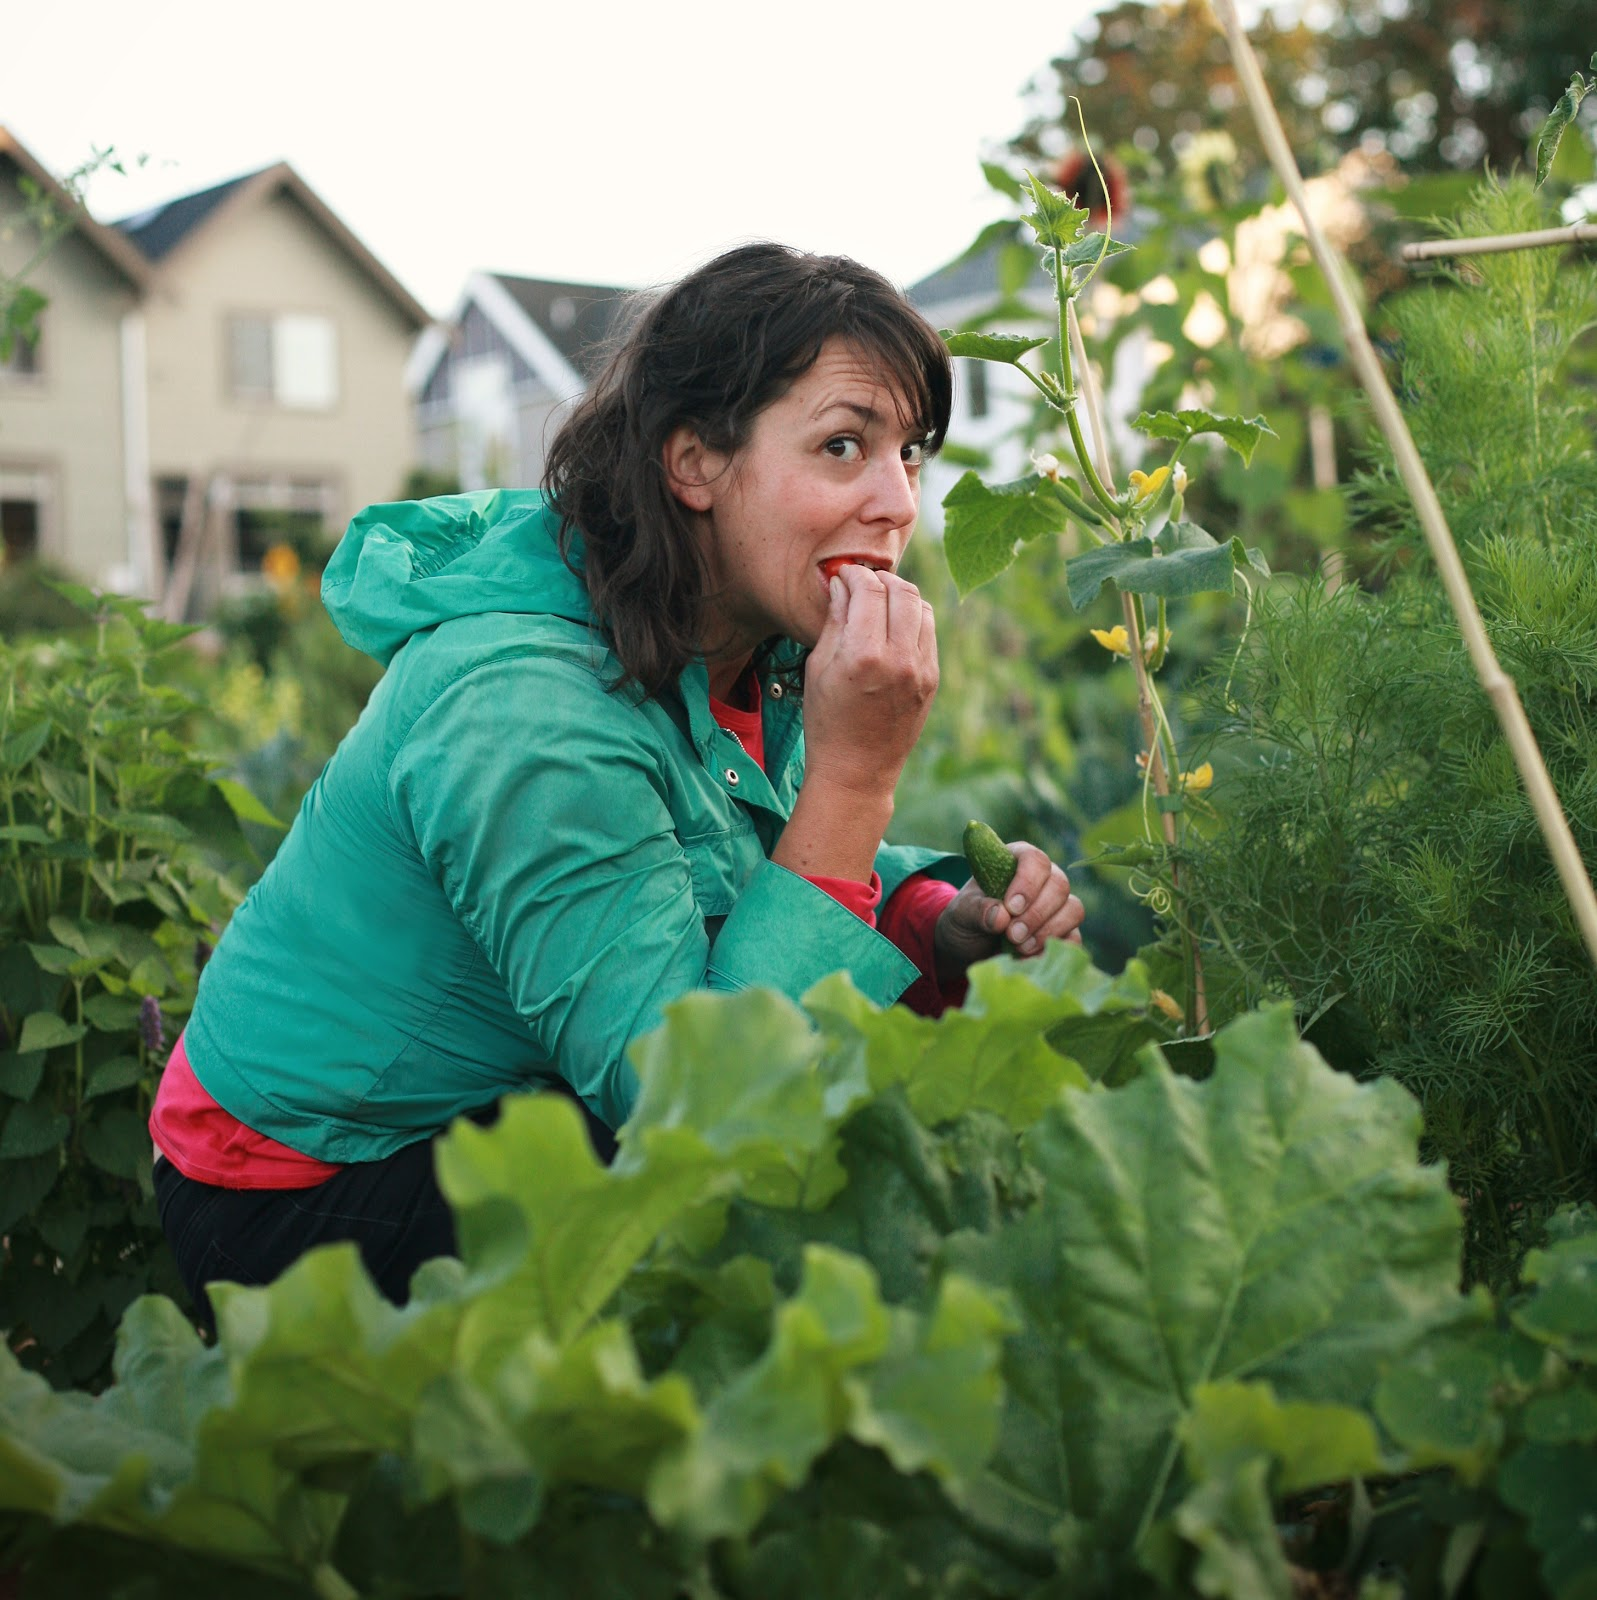 A Seattle Urban Farming Business Specializing in Prolific, Year-Long & Organic Edible Gardens for Homes and Businesses -